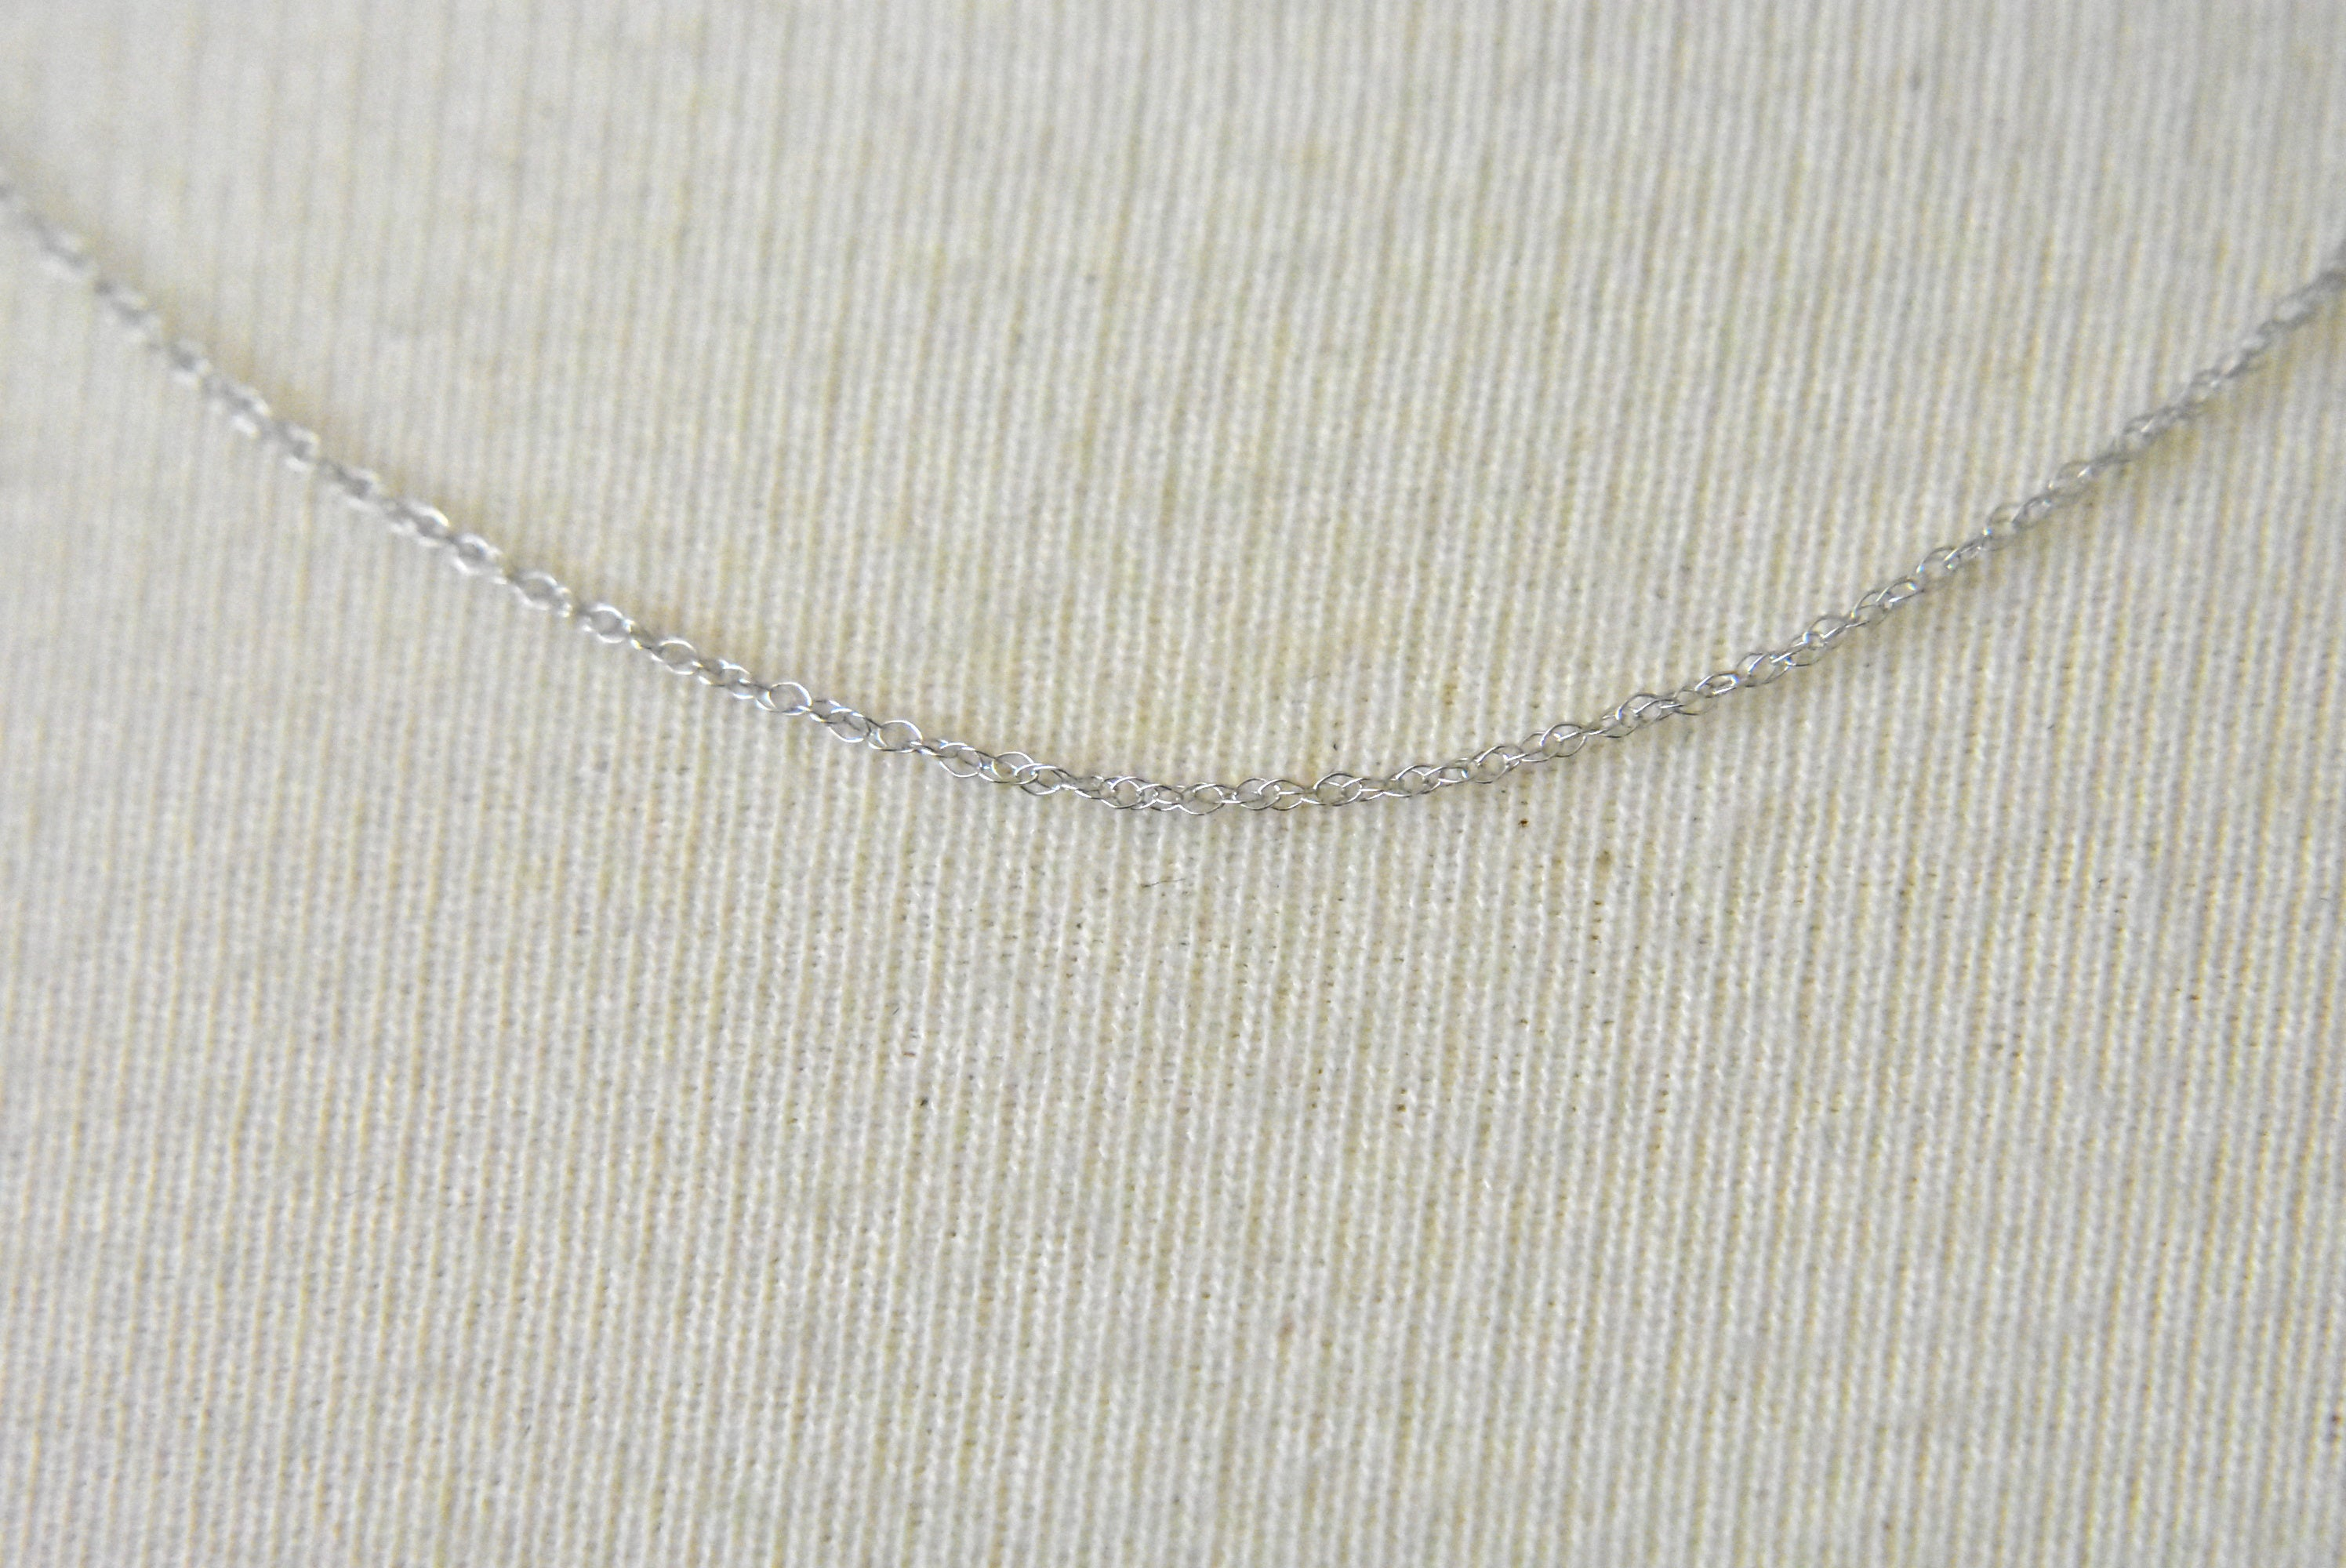 14k White Gold 0.50mm Thin Cable Rope Necklace Pendant Chain